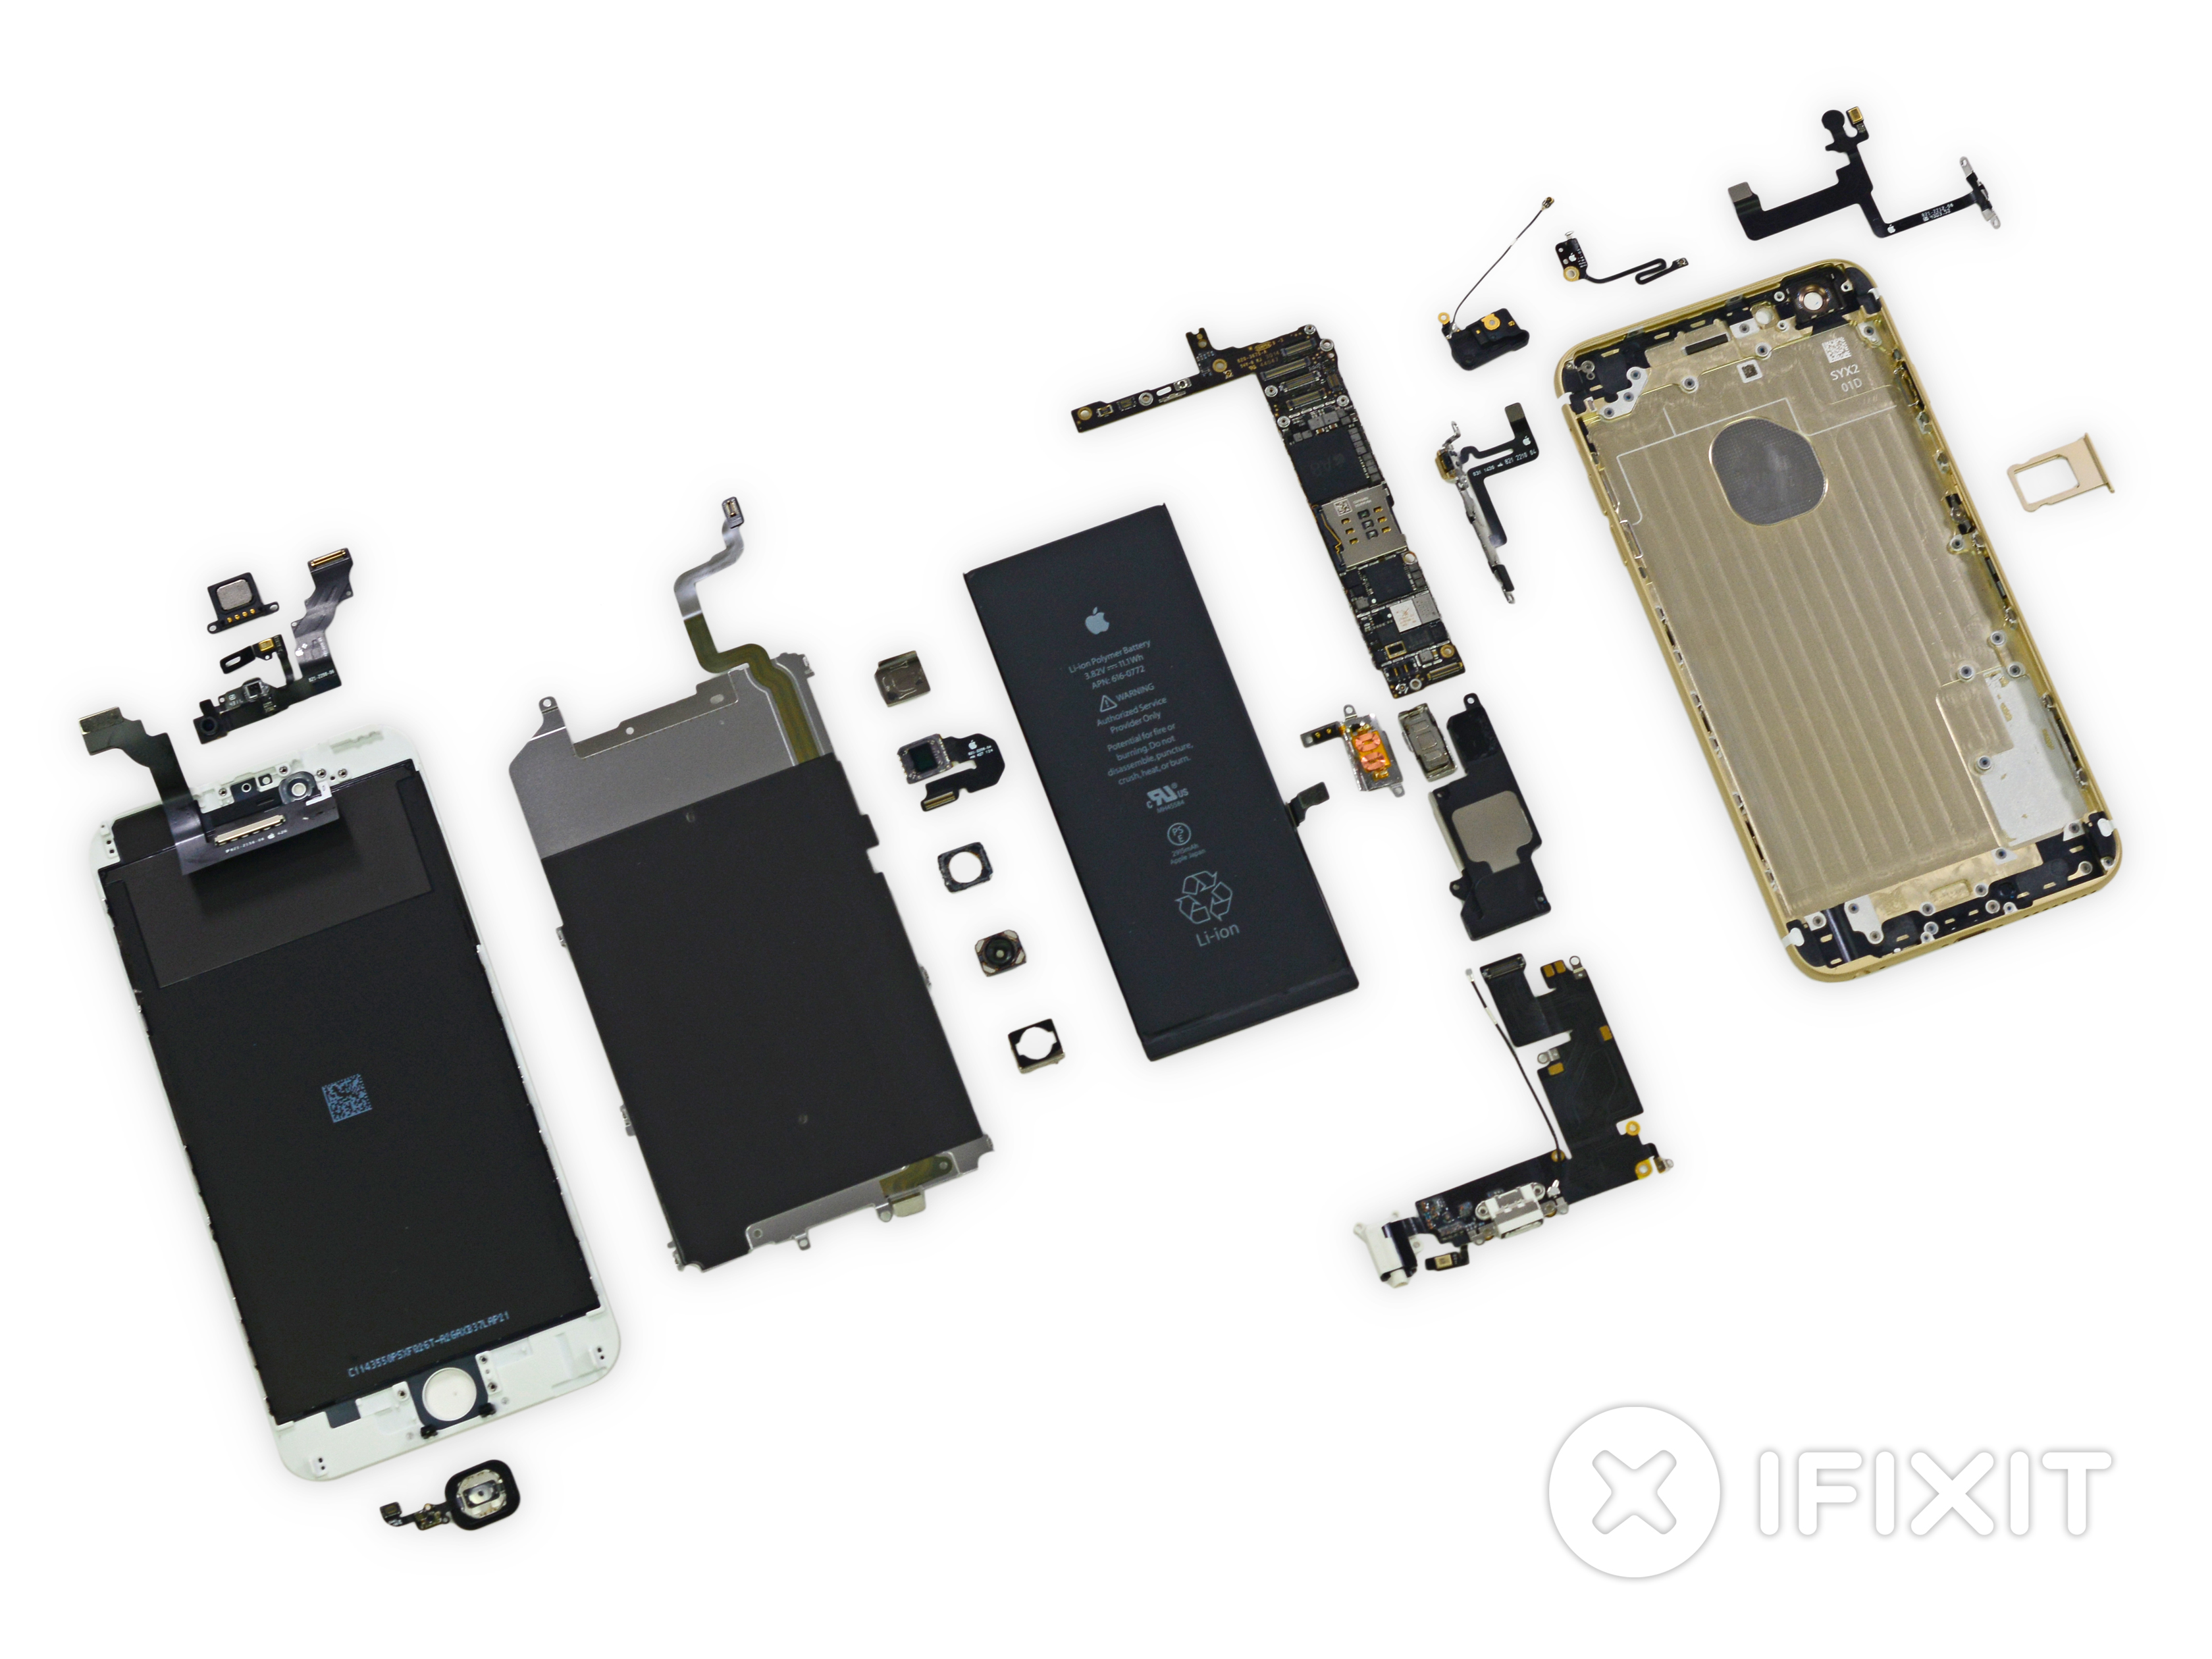 Iphone 6 Plus Teardown Ifixit The Circuit Diagram Of Emitter Side Touch Screen System